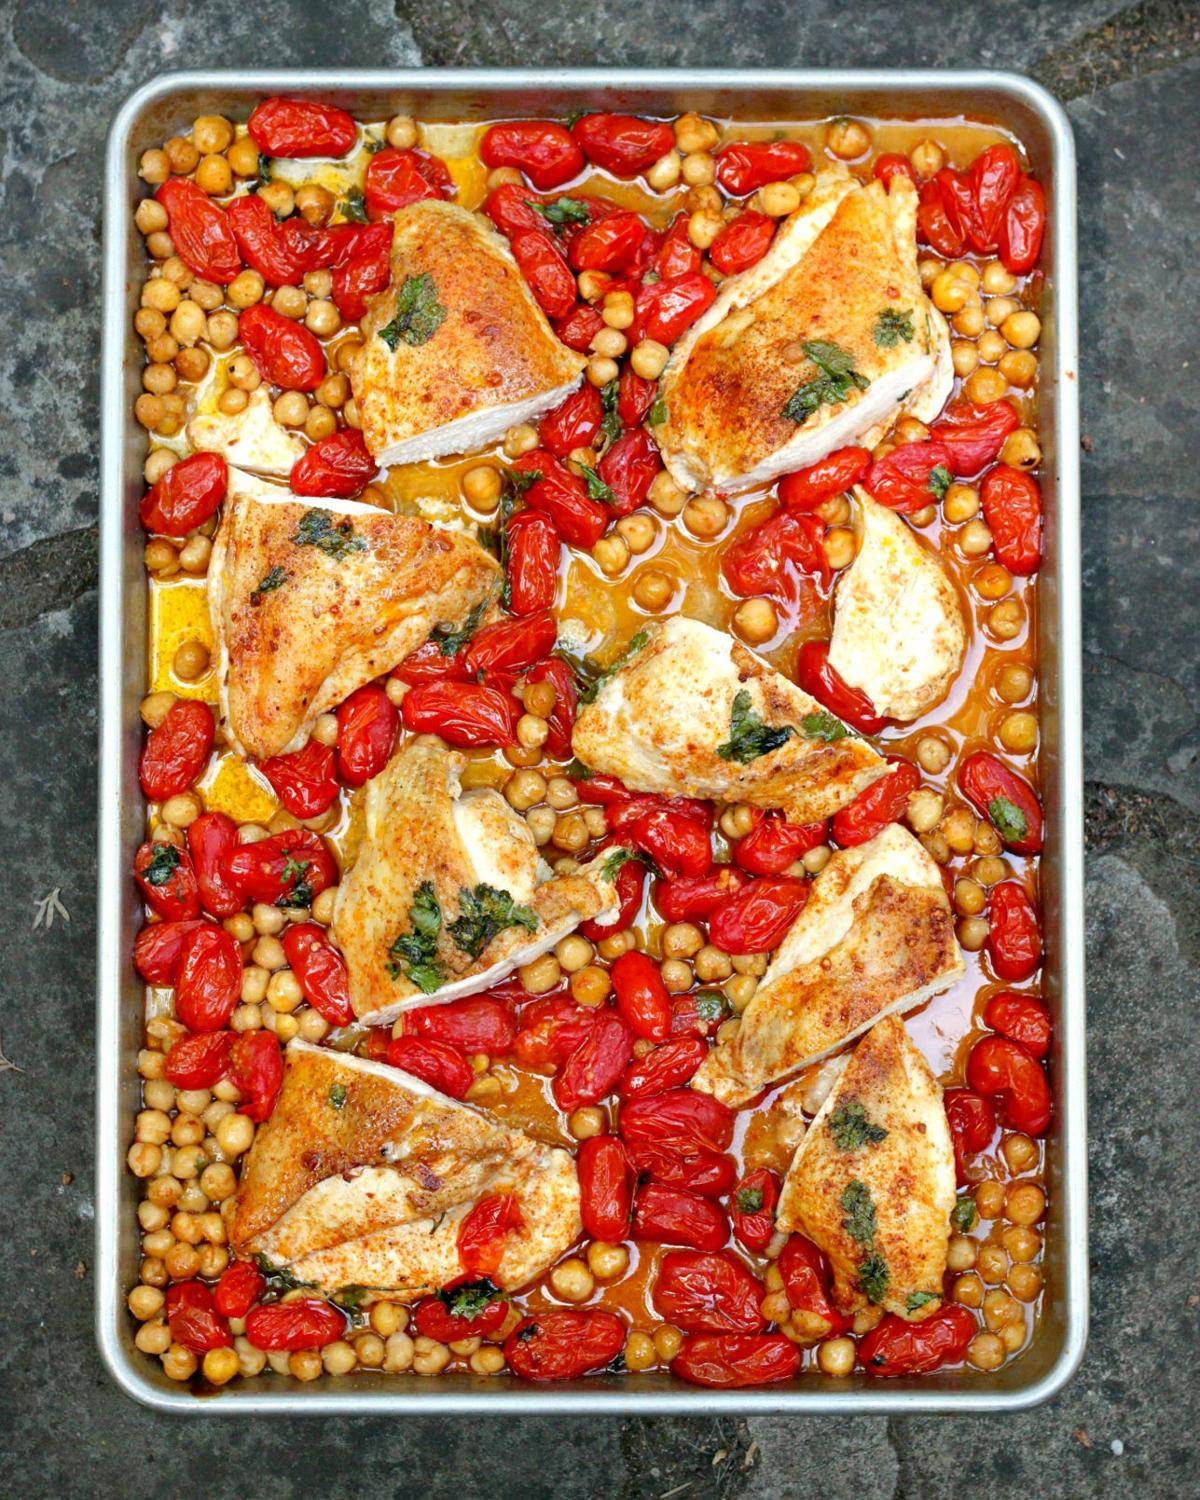 Sheet Pan Chicken Breast With Tomatoes and Chickpeas